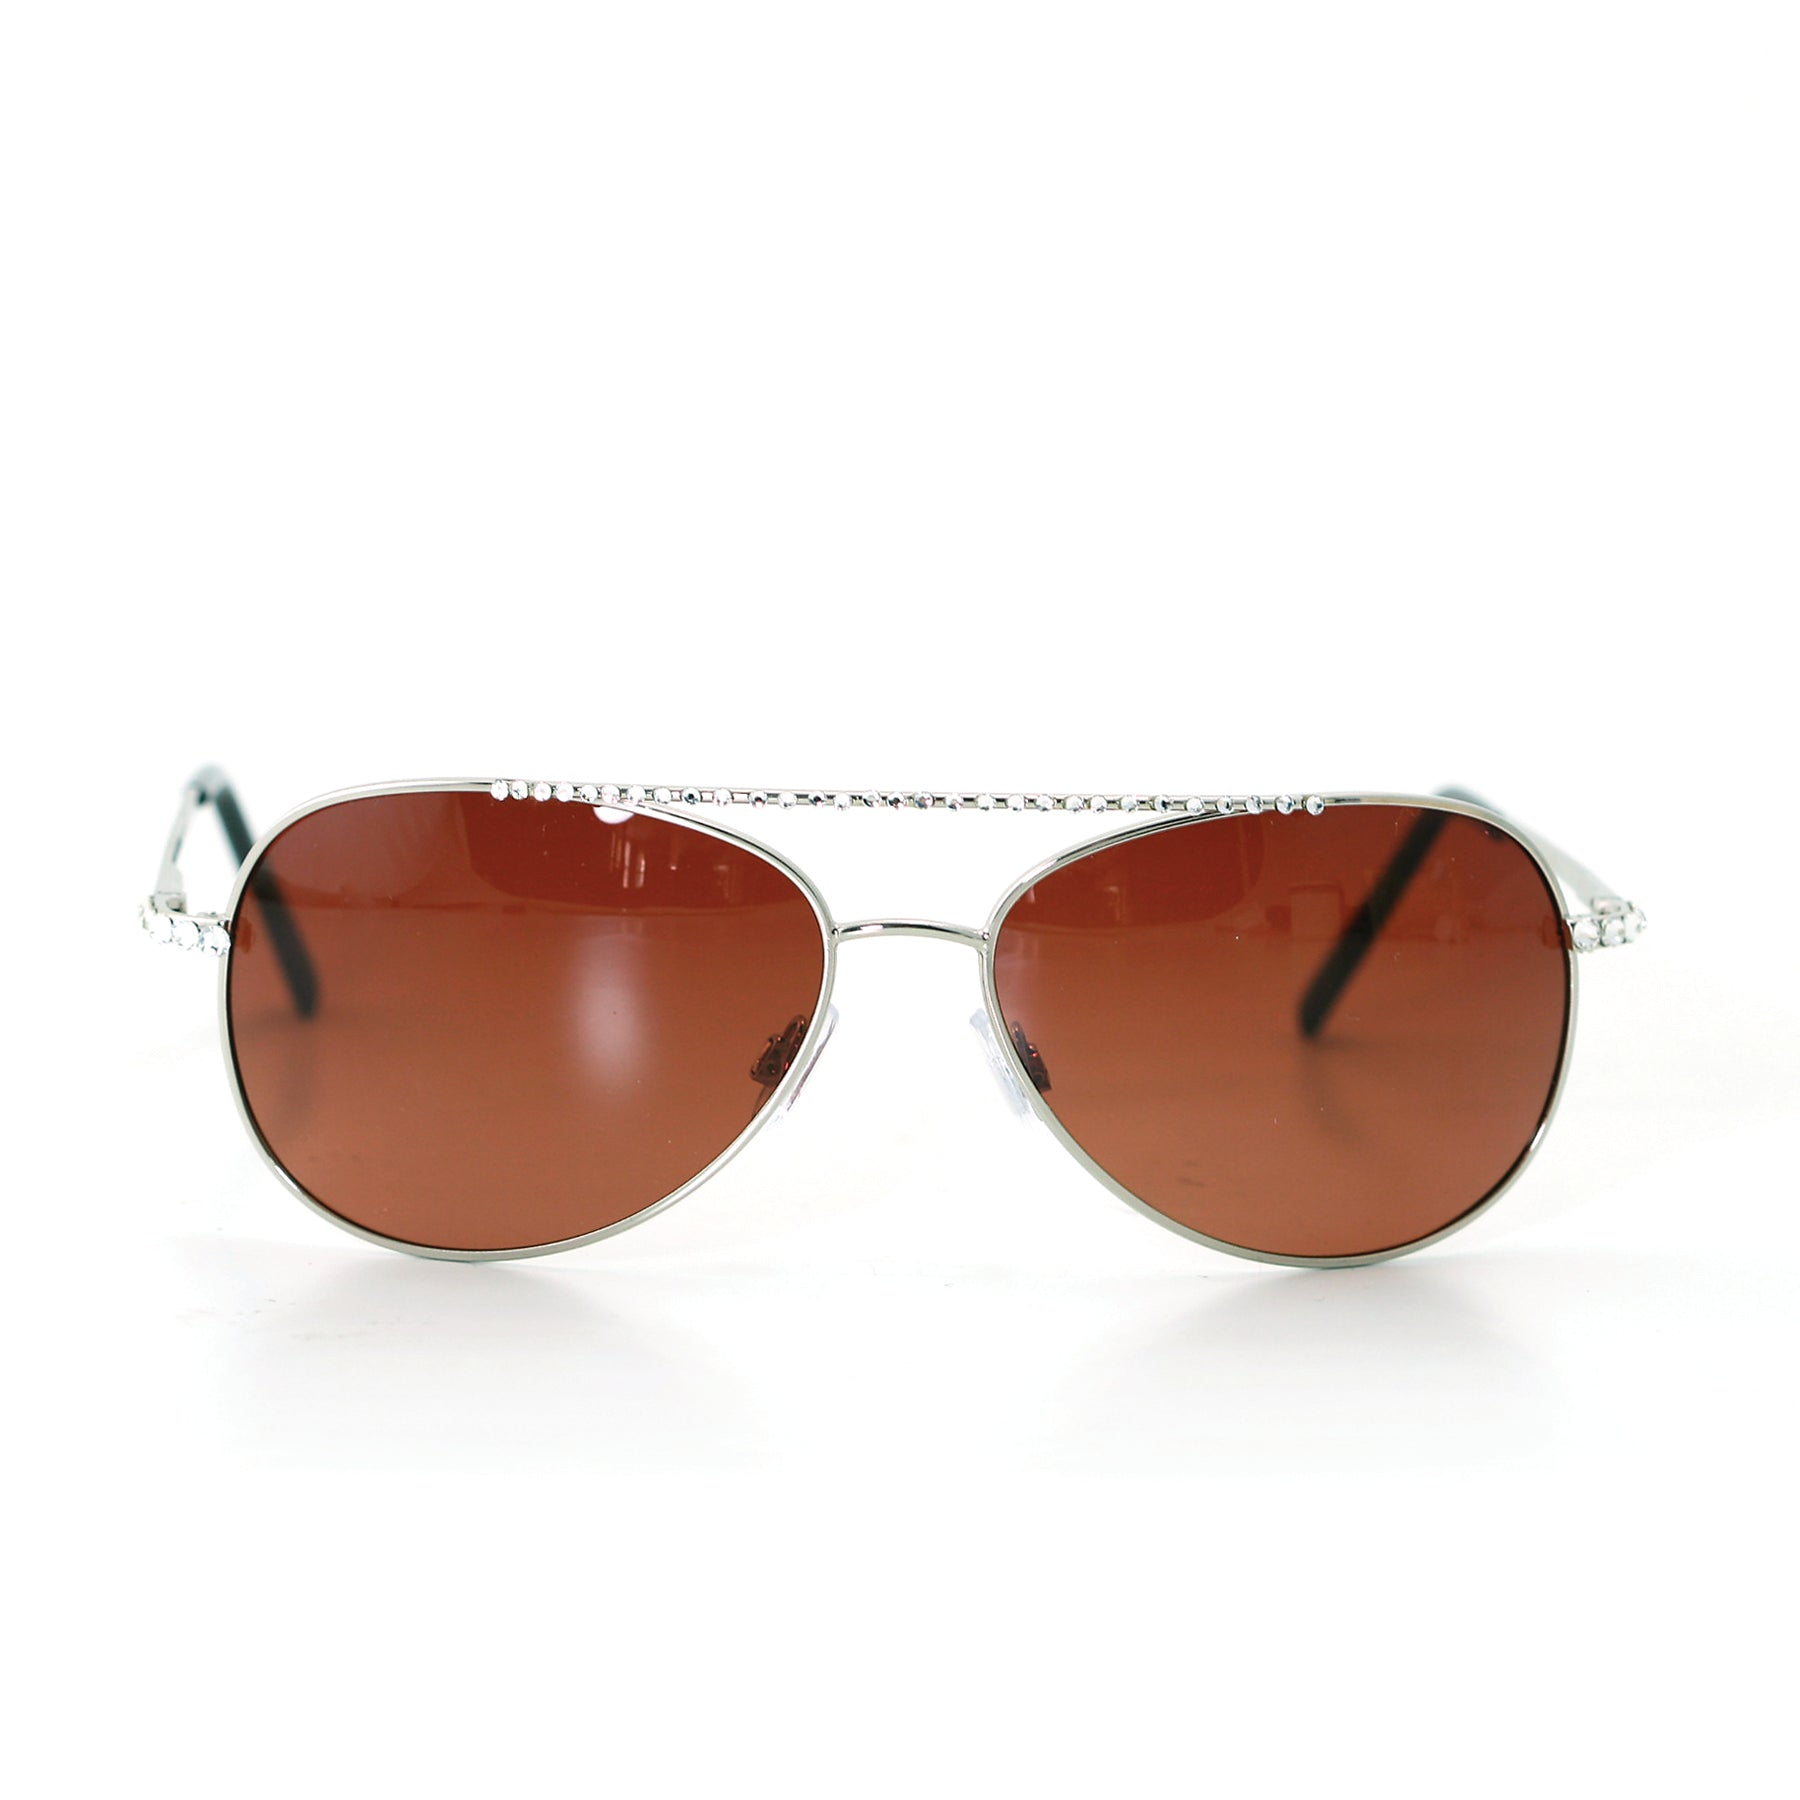 Sunglasses Made with Swarovski Elements, silver color, front view